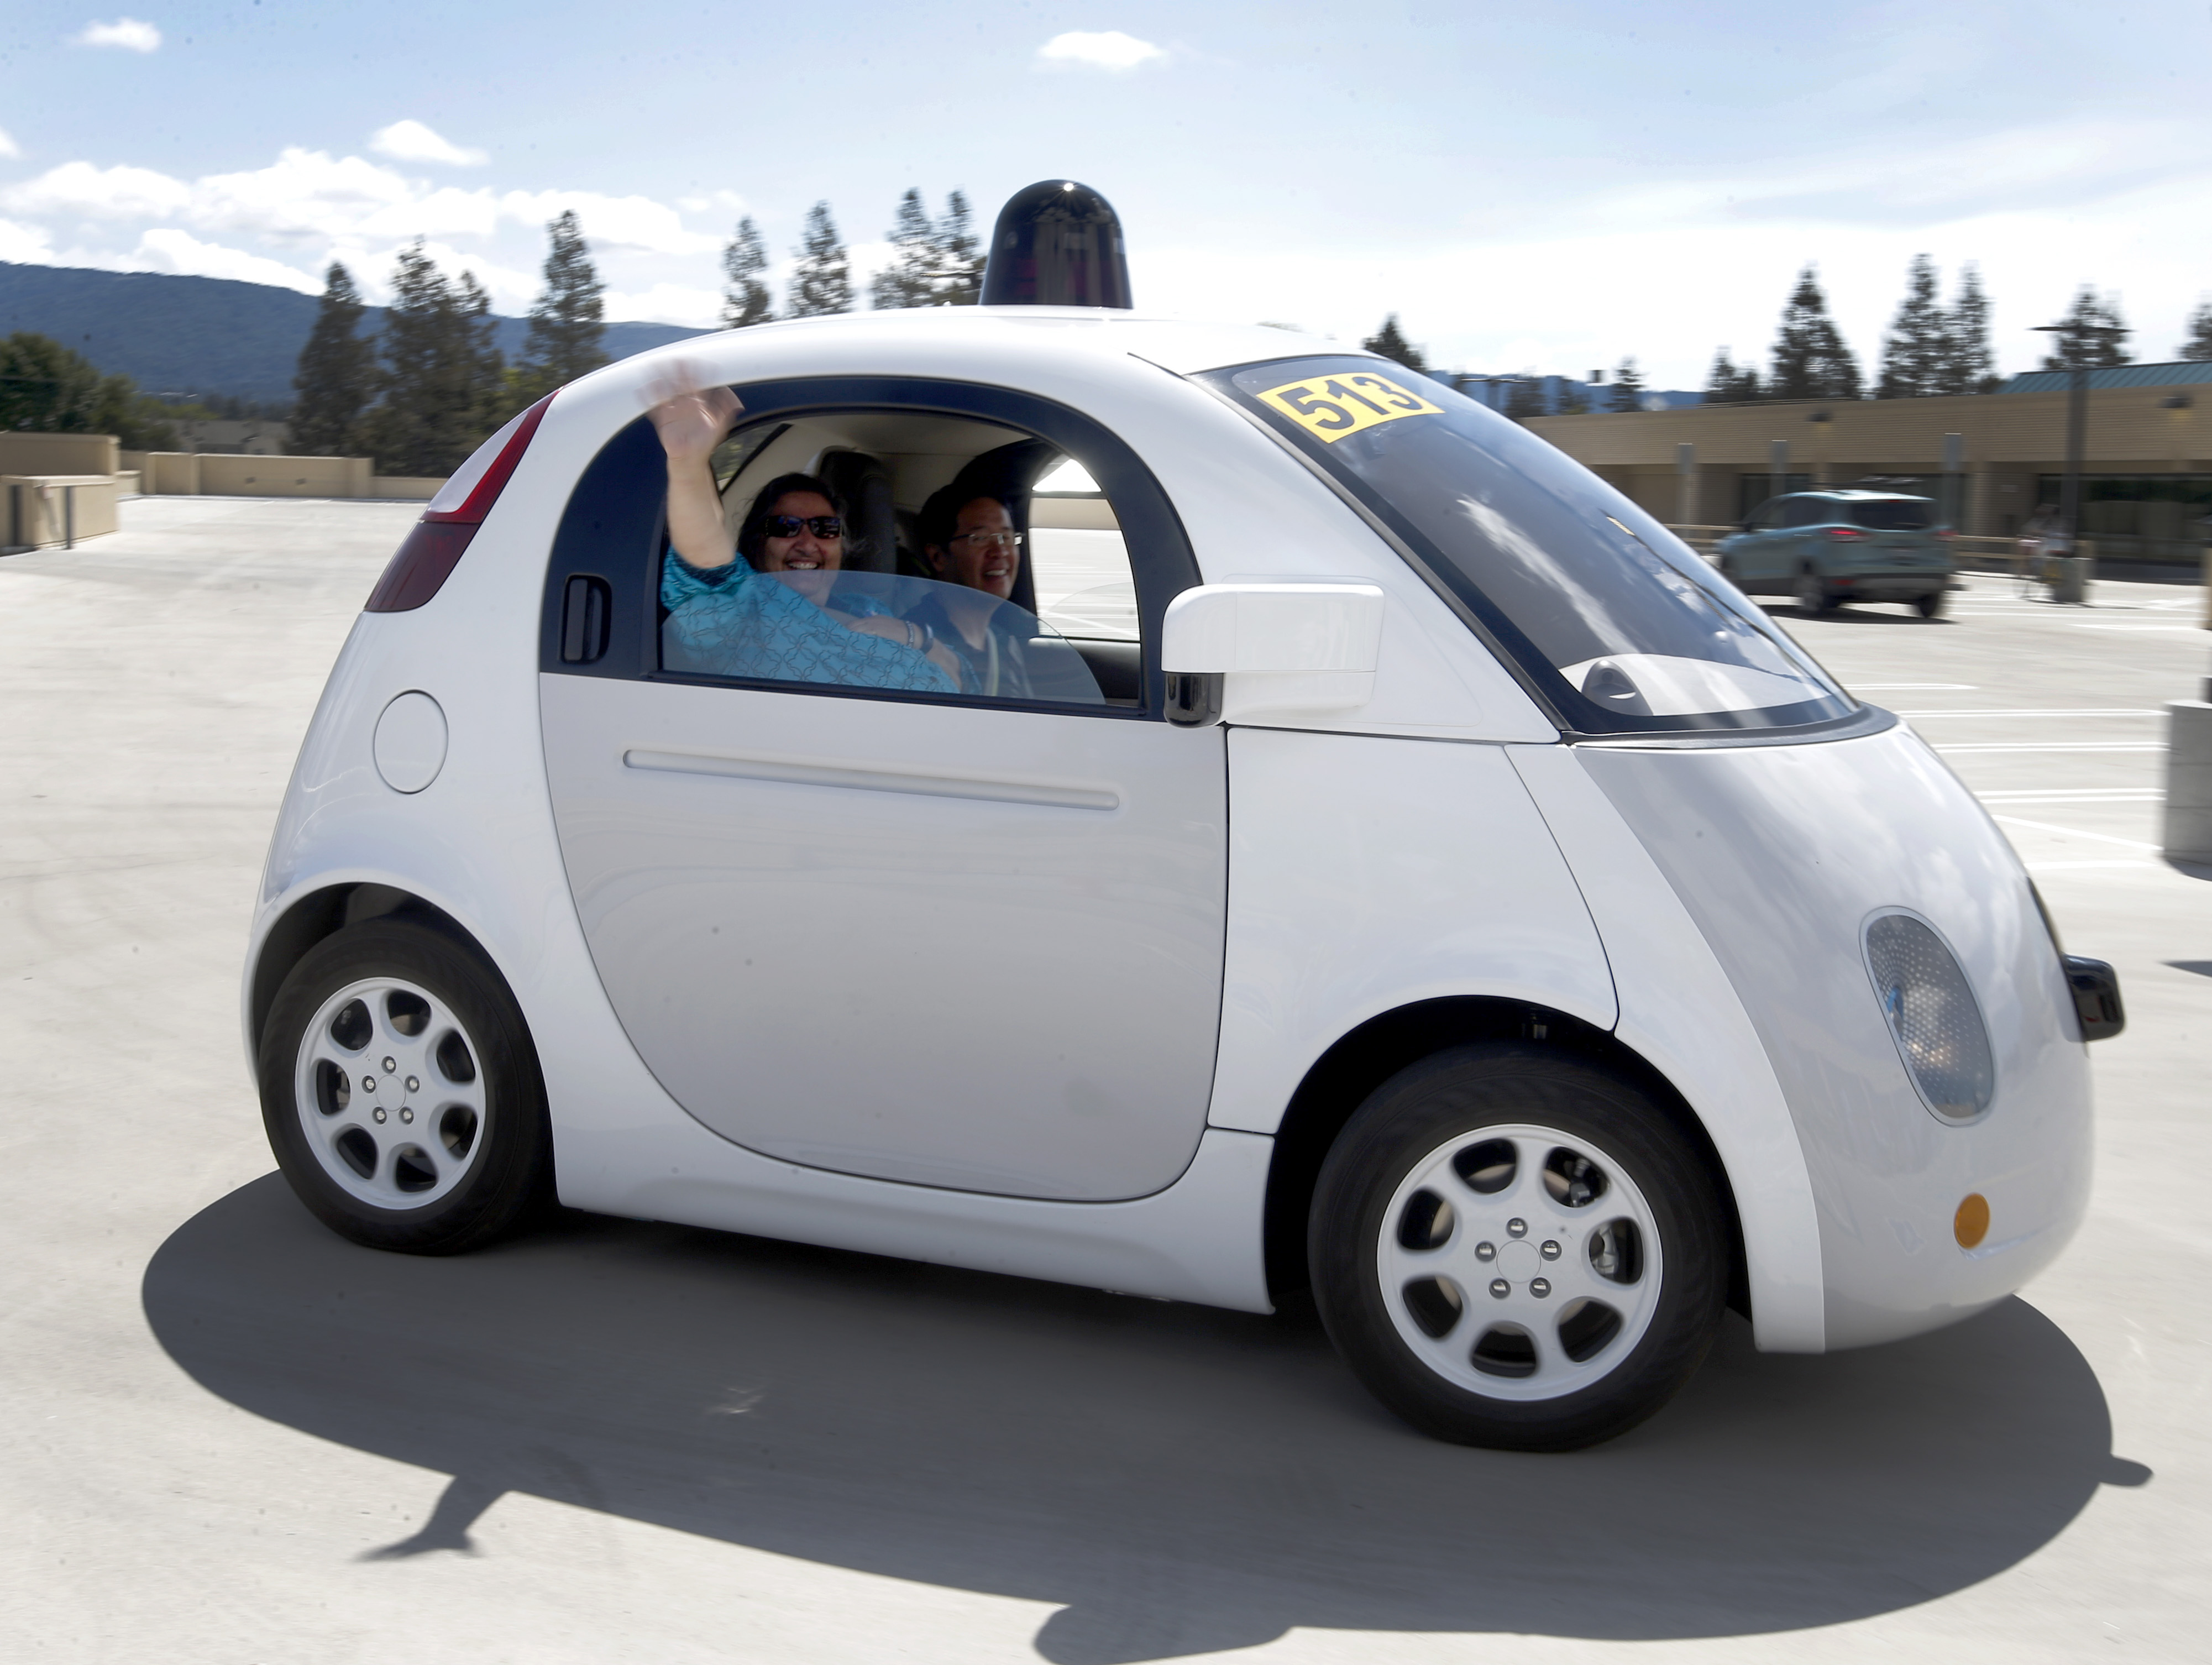 Google's Self-Driving Car Pulled Over for 'Driving too slowly'